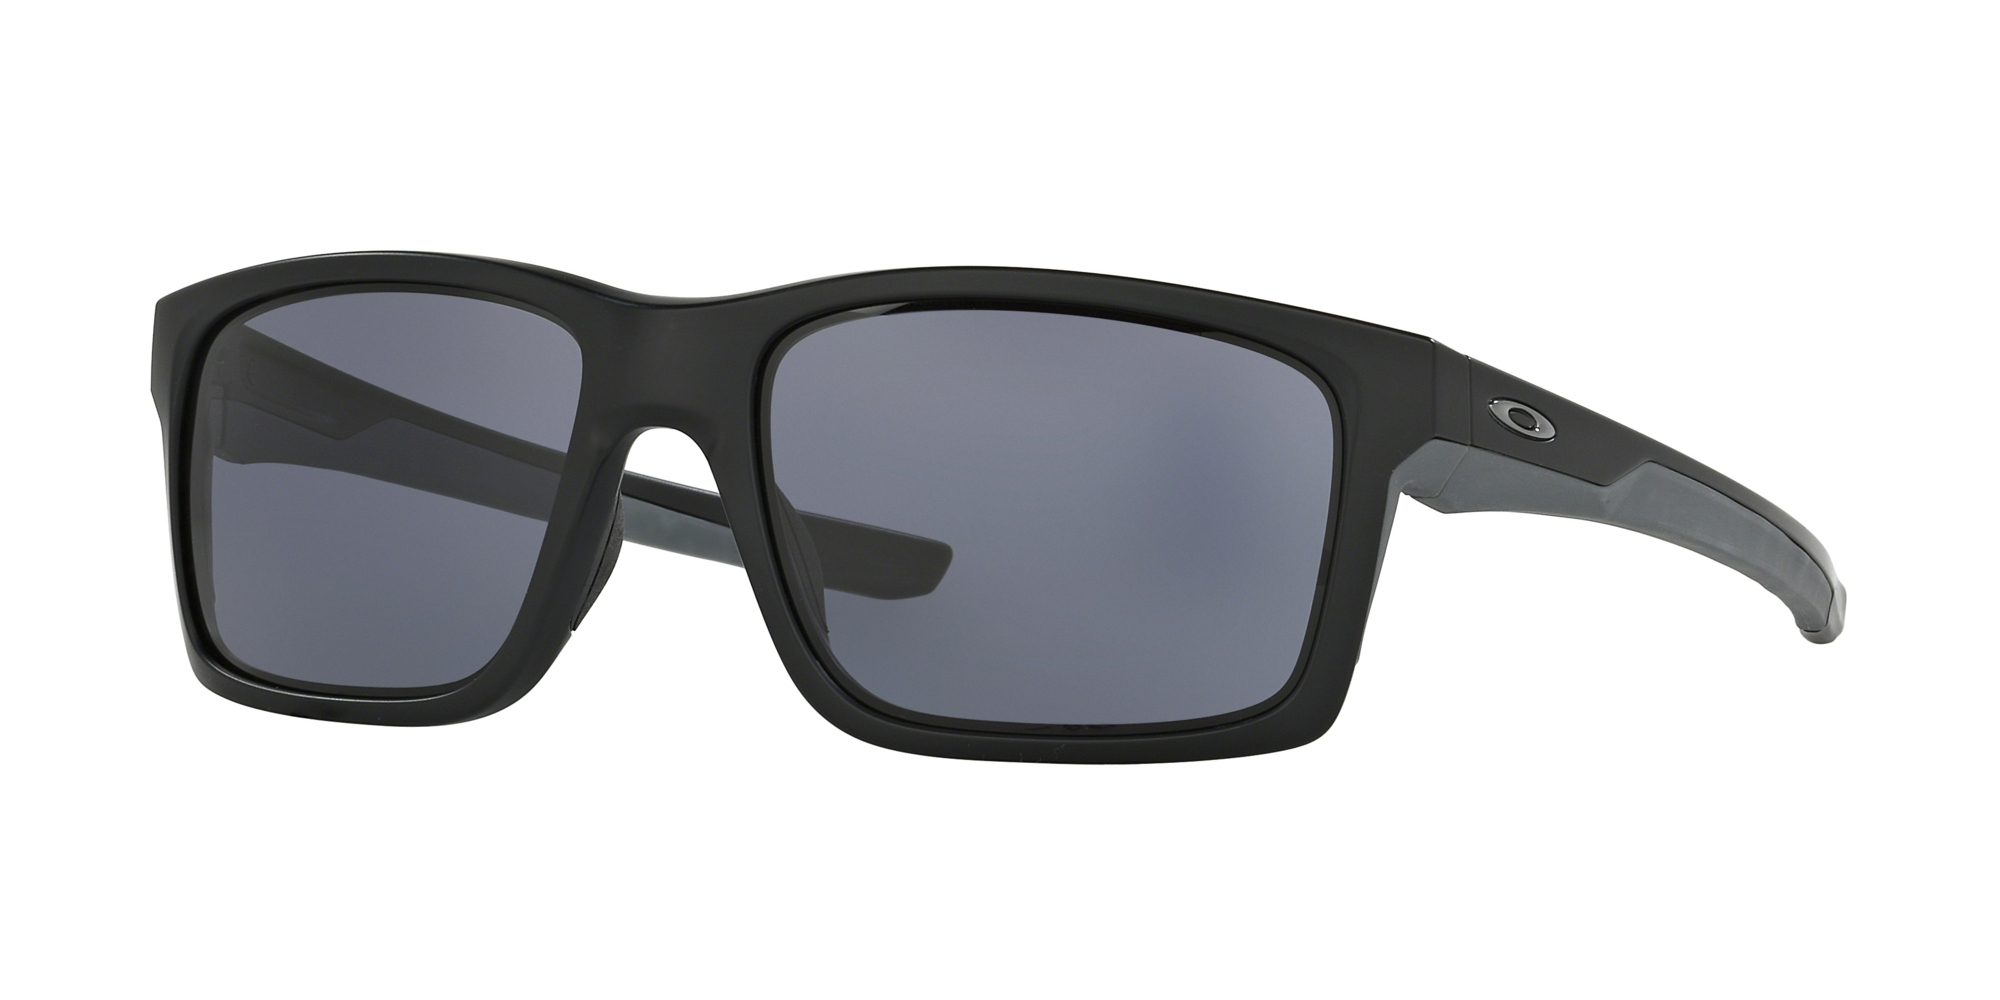 Oakley Grey Square Sunglasses - OO9264-01